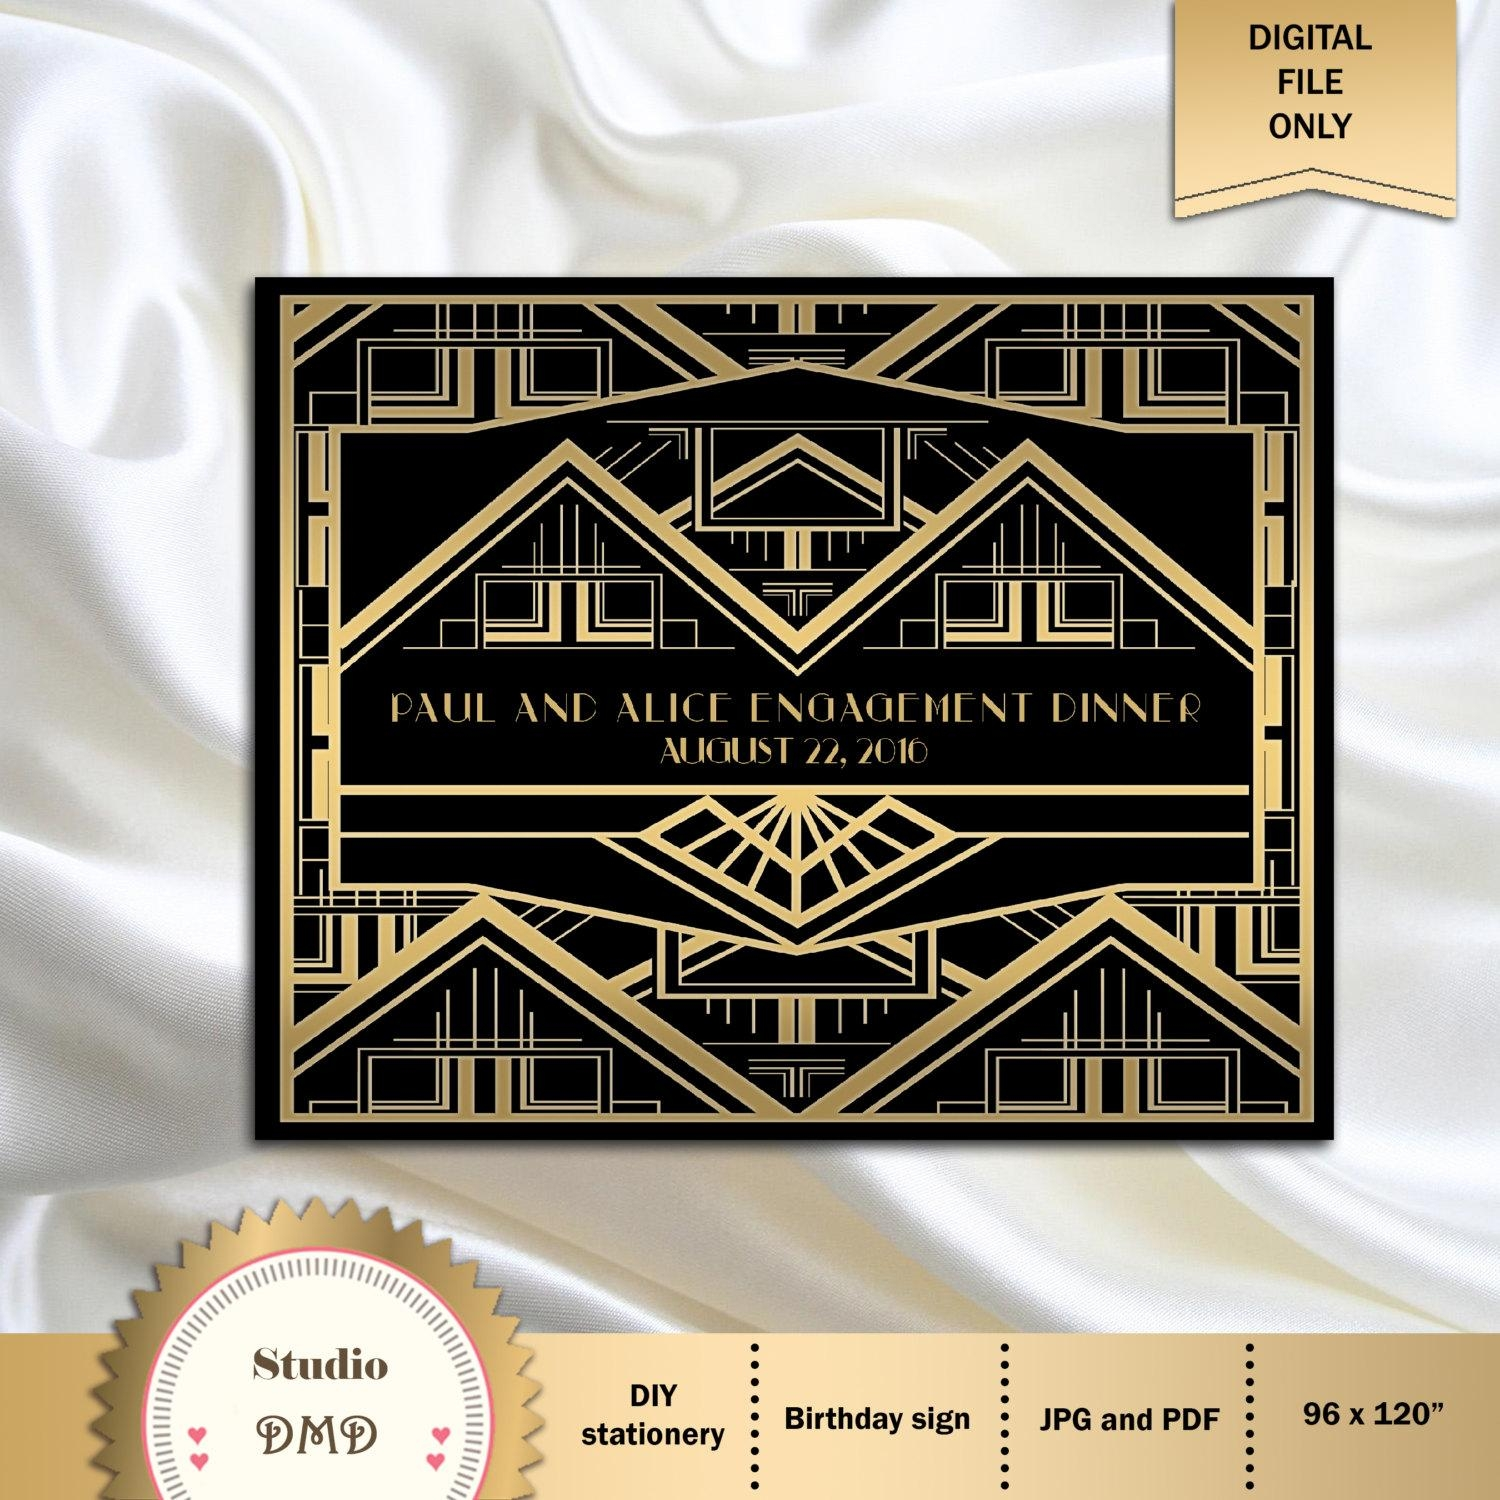 Great Gatsby Art Deco Backdrop For Photos Wall Decor Party Regarding Great Gatsby Wall Art (View 17 of 20)